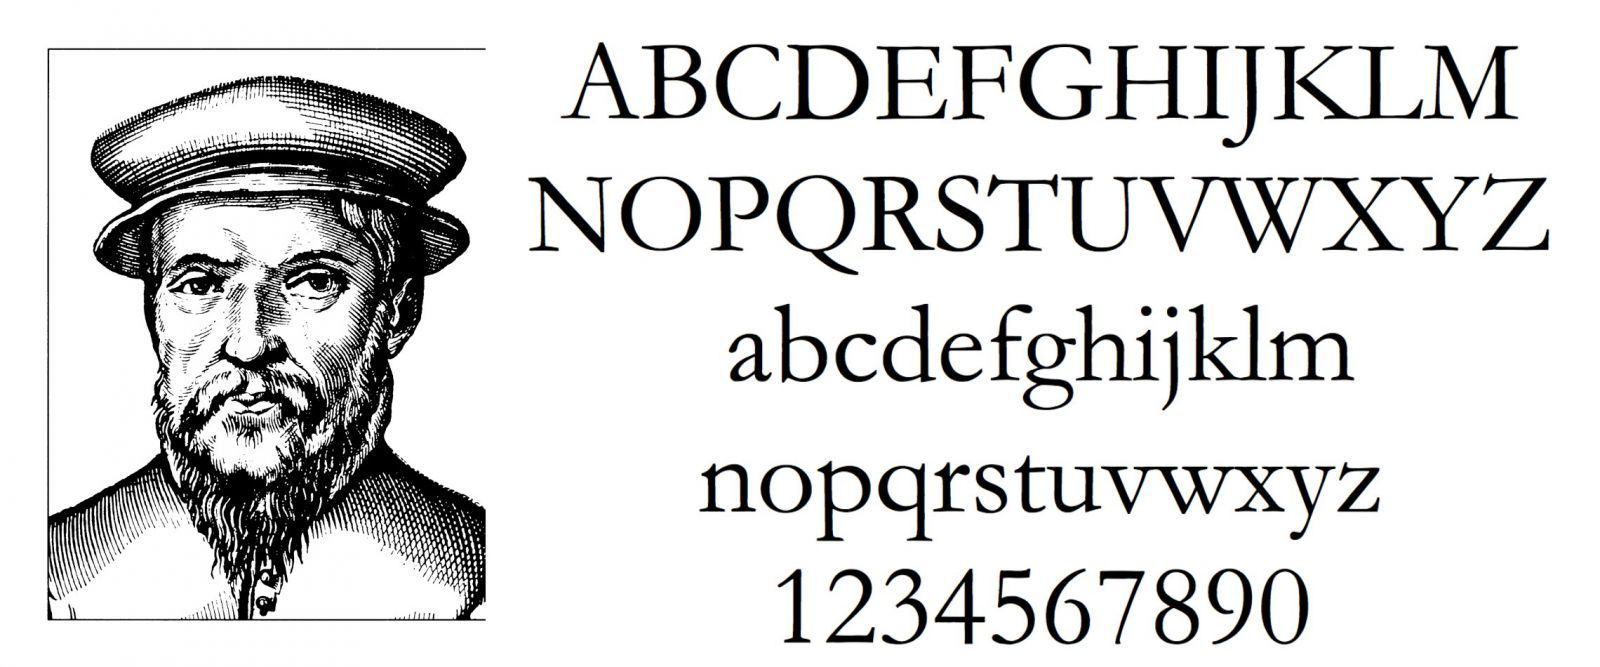 Claude Garamond 1480 1561 Font Names History Design Claude